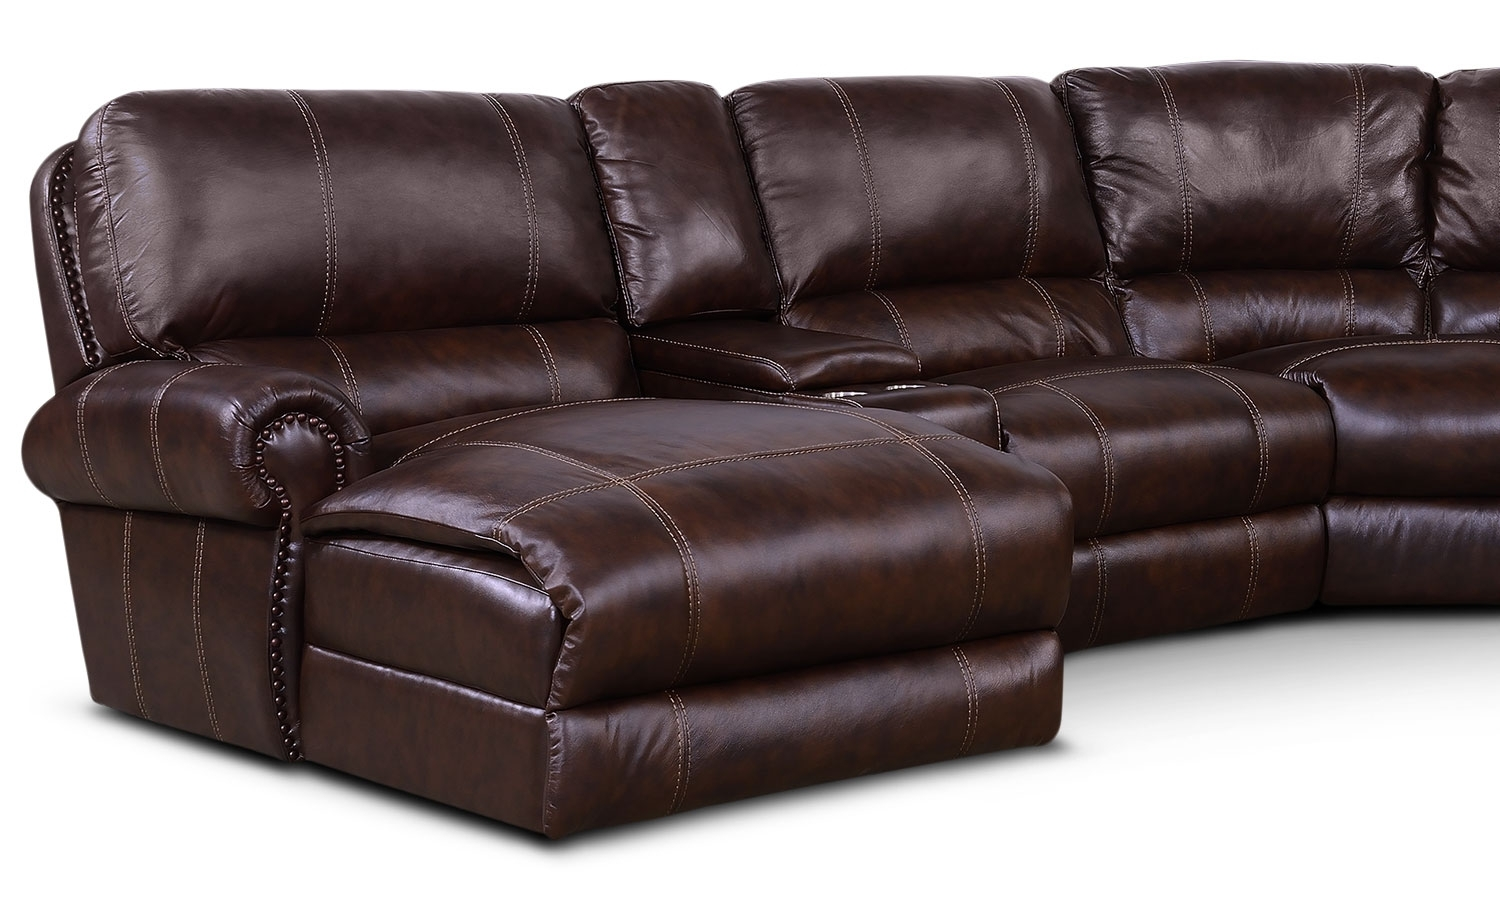 Dartmouth 6 Piece Power Reclining Sectional W/ Left Facing Chaise Throughout Norfolk Chocolate 6 Piece Sectionals With Laf Chaise (Image 9 of 25)